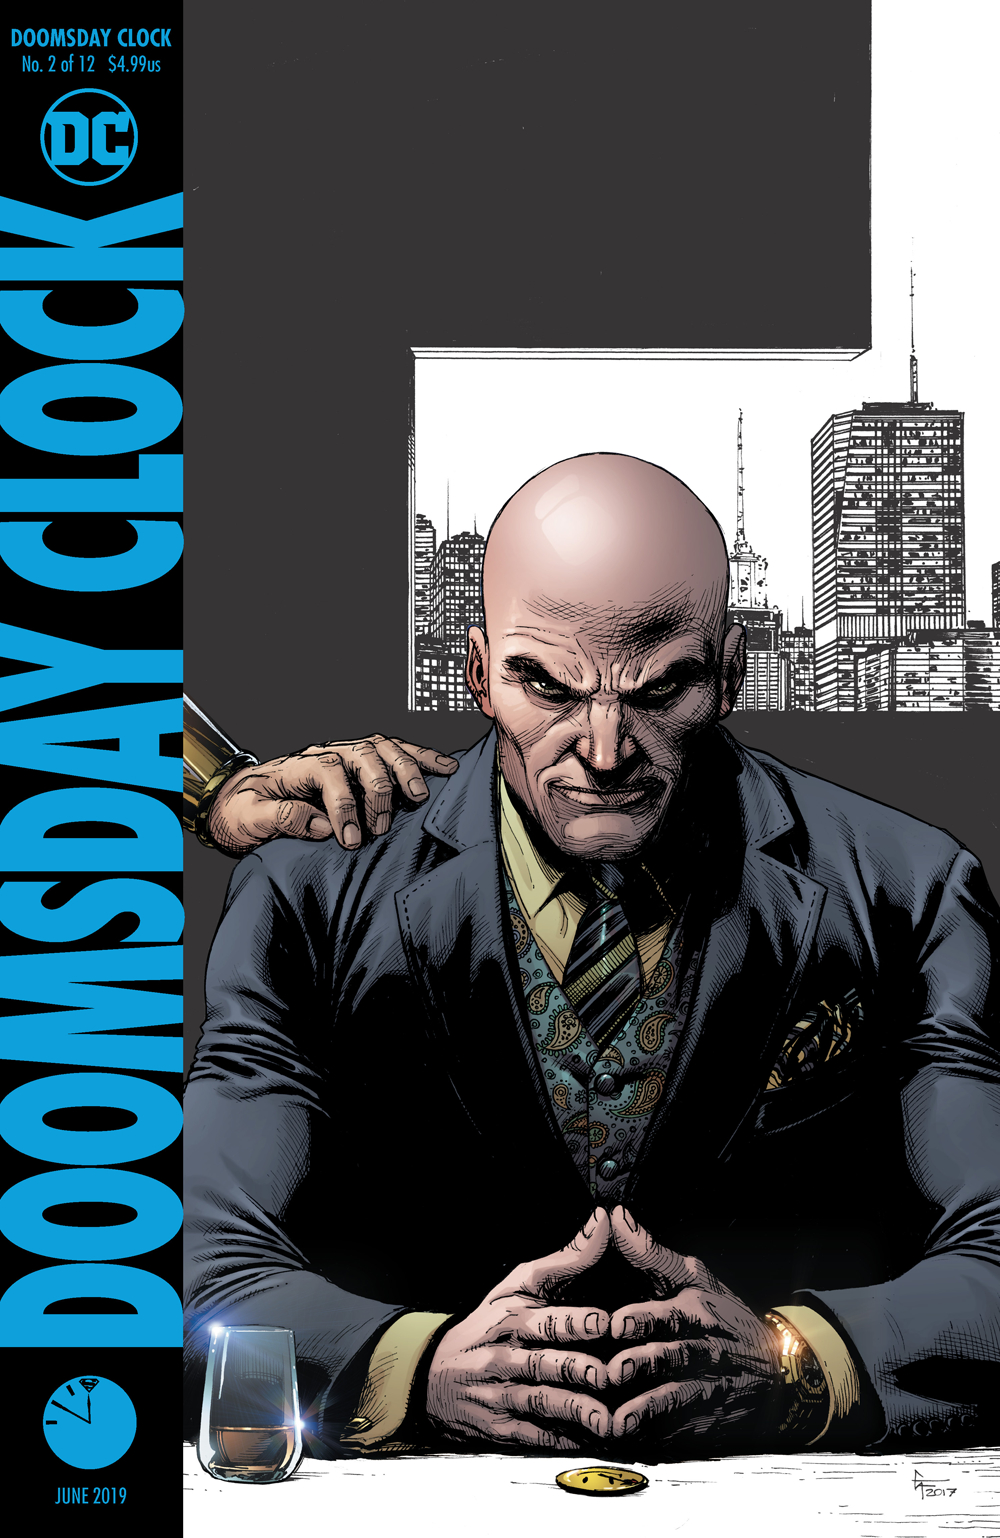 DOOMSDAY CLOCK #2 (OF 12) FINAL PTG